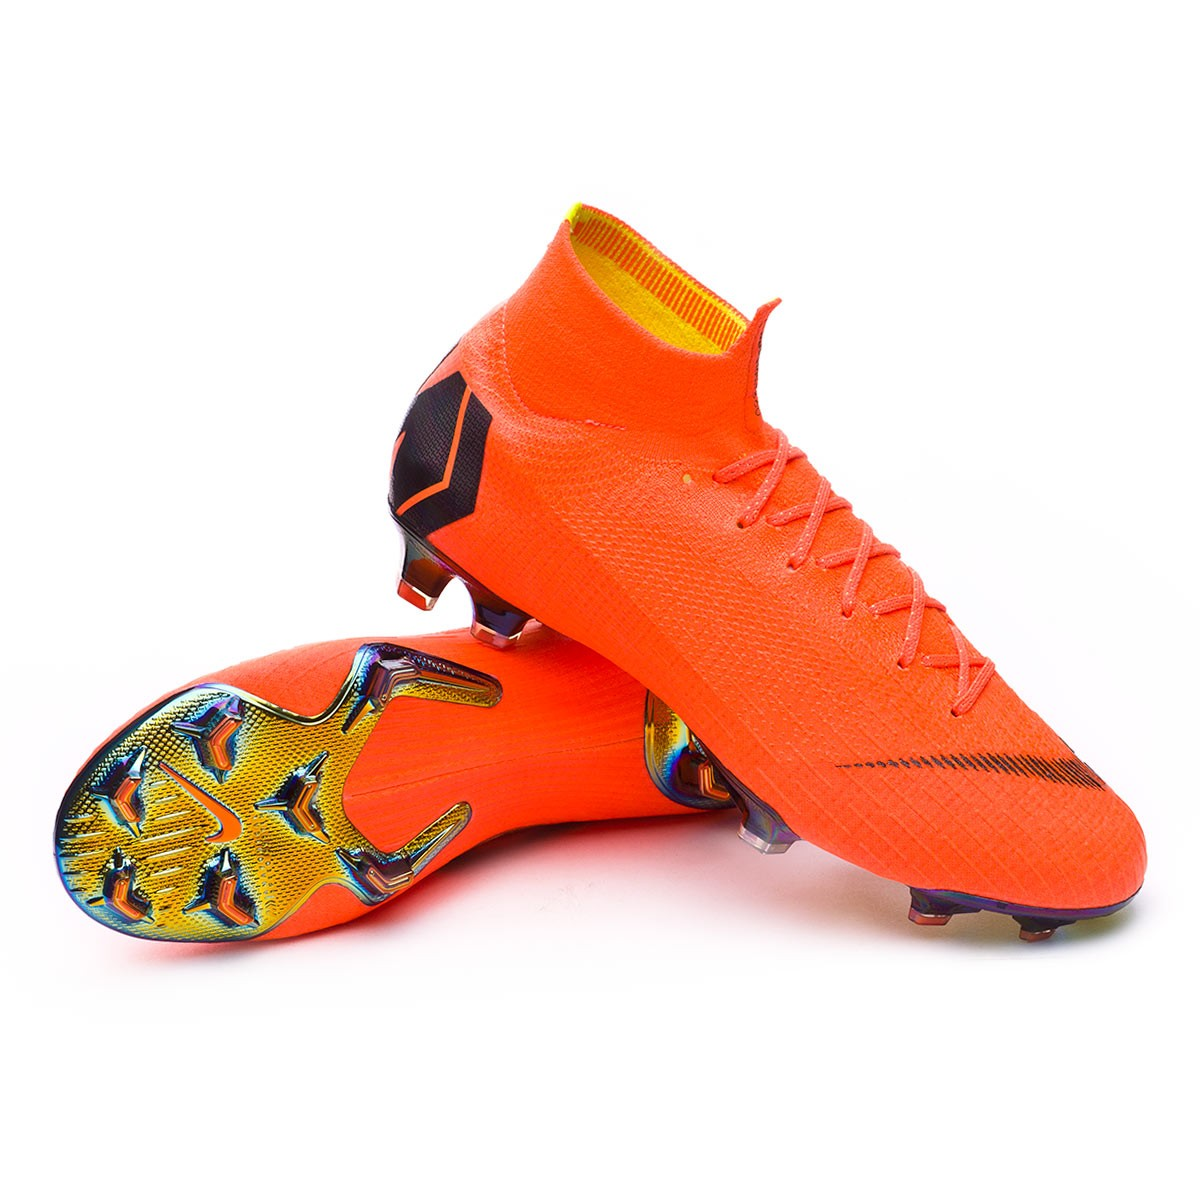 ... Bota Mercurial Superfly VI Elite FG Total orange-Black-Volt. CATEGORY 1d5c73c6f4c90